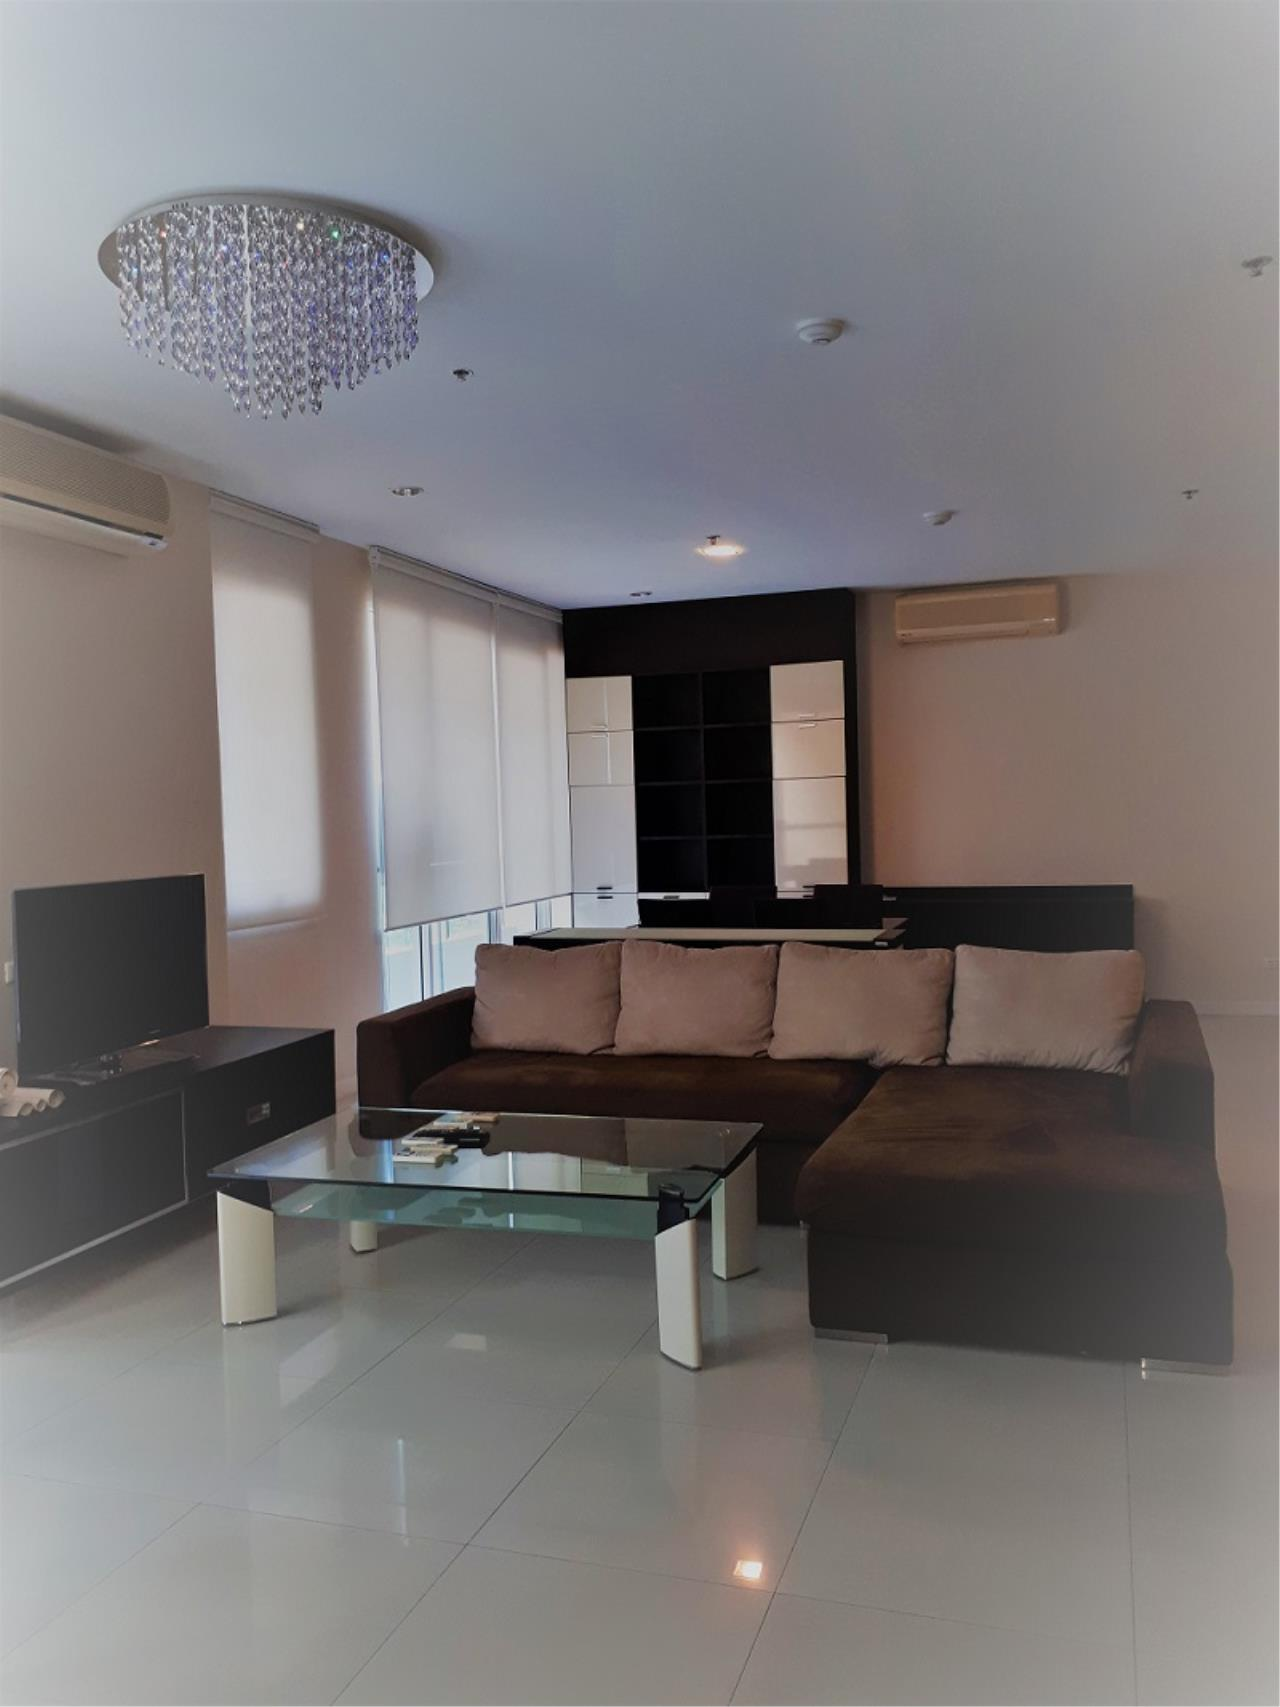 RE/MAX CondoDee Agency's Spacious 3 Bedrooms Condo @ Sukhumvit 11 5